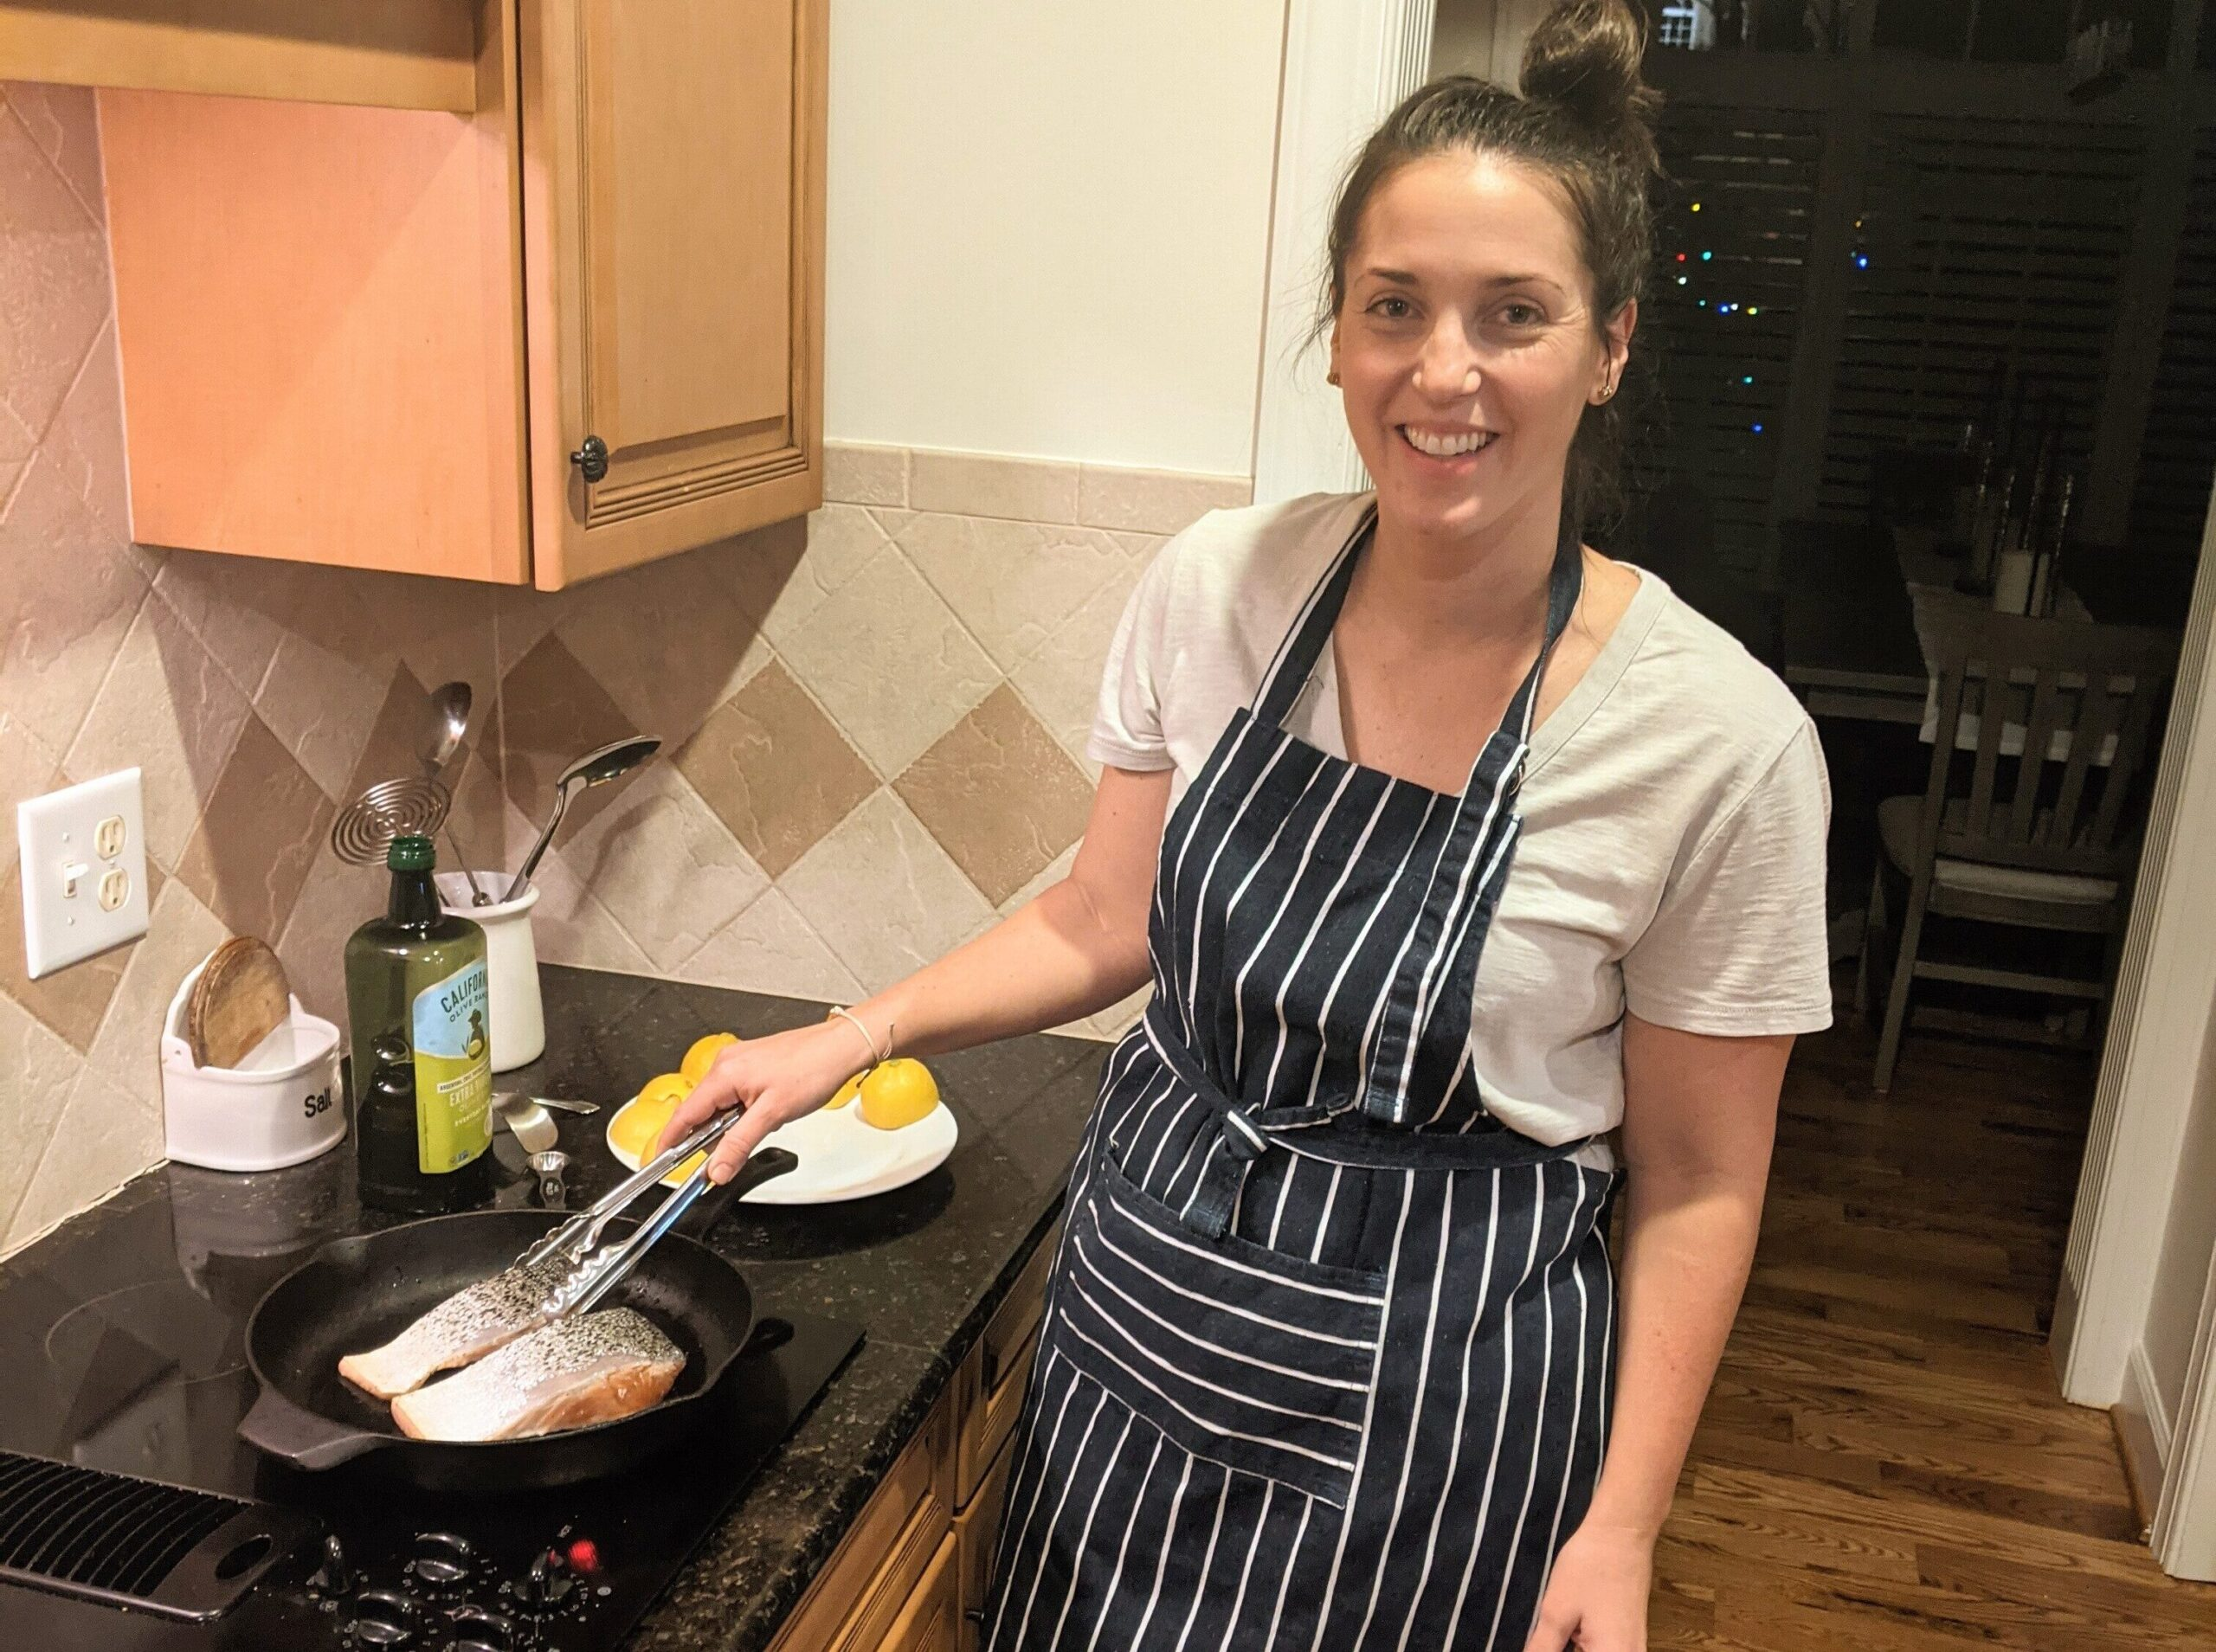 Woman cooking dinner on the stove